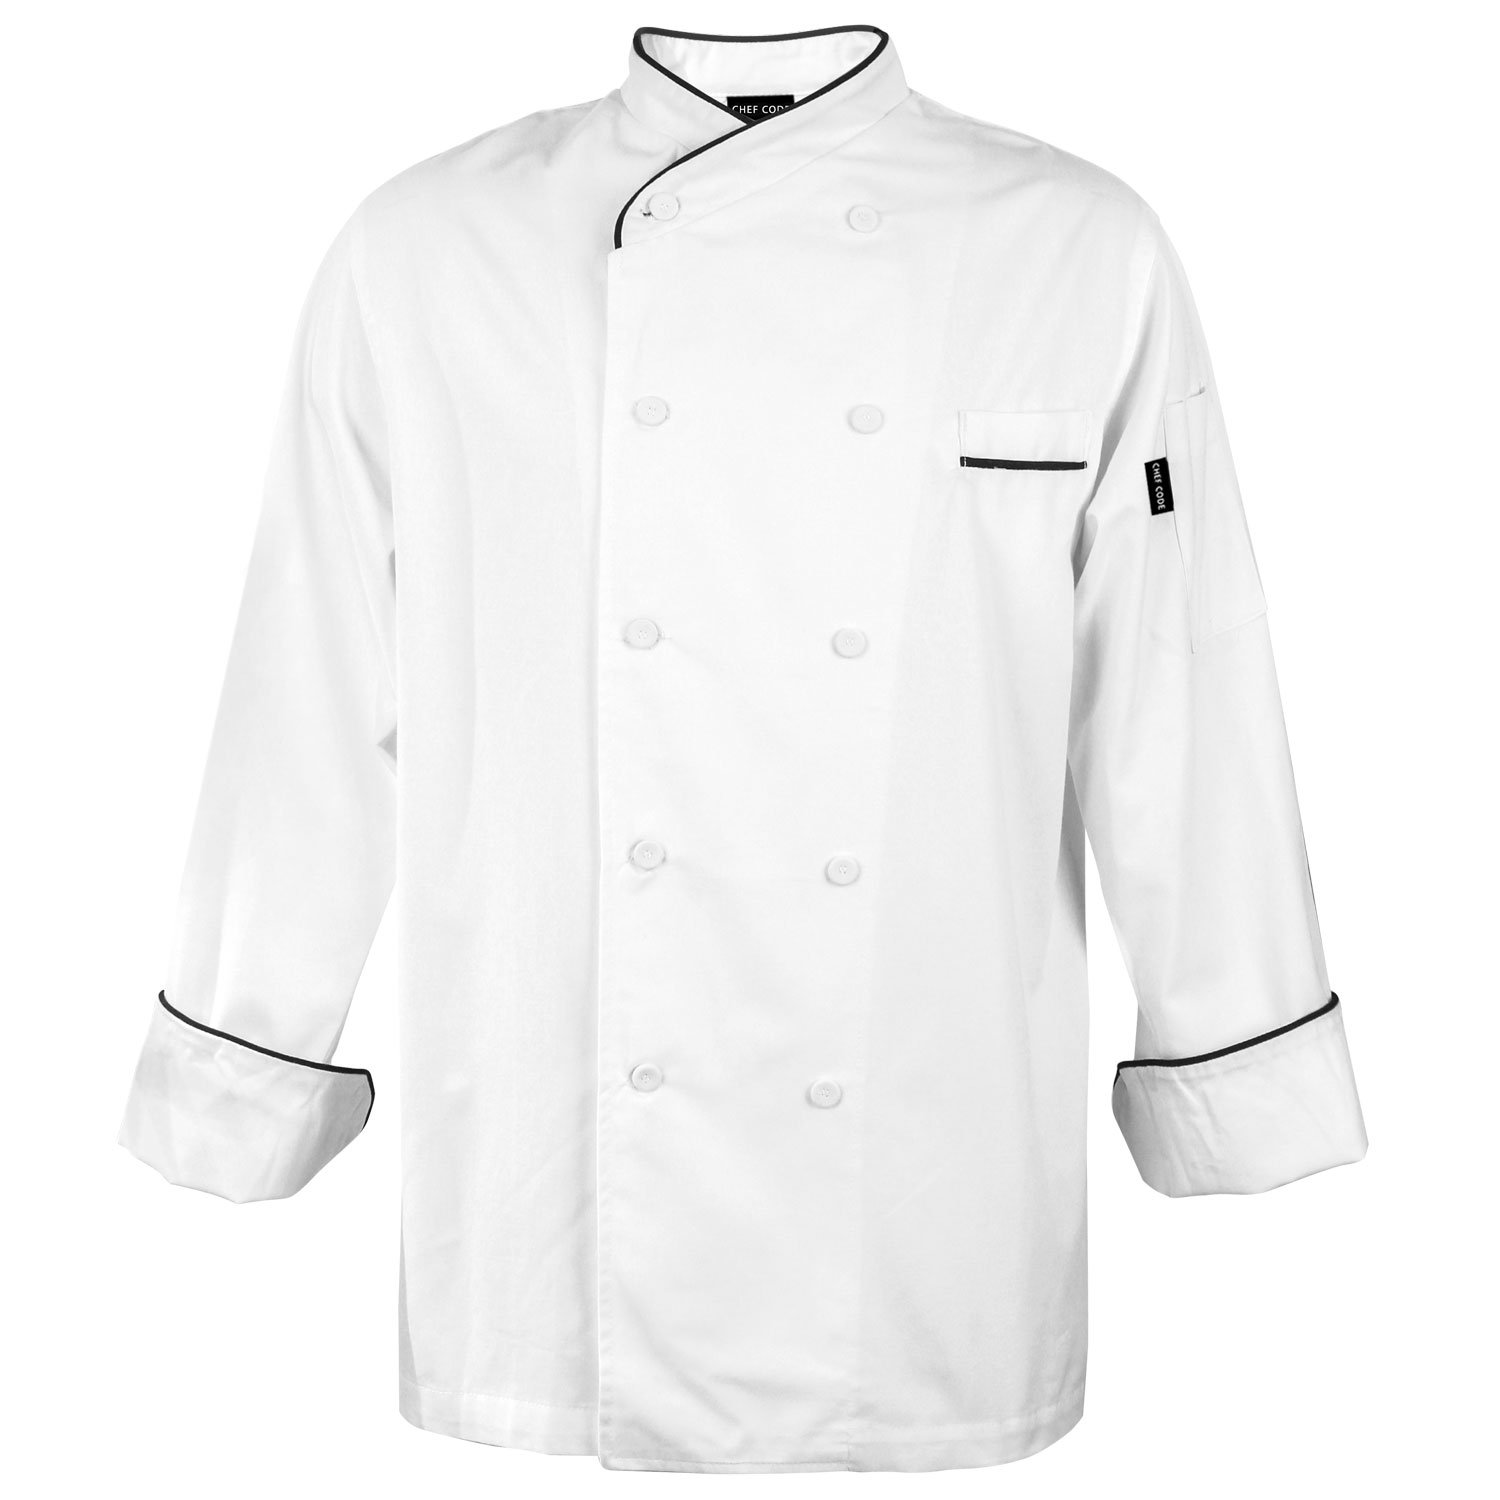 Chef Code Gossypium Prestige Executive Chef Coat Unisex (XL, White)